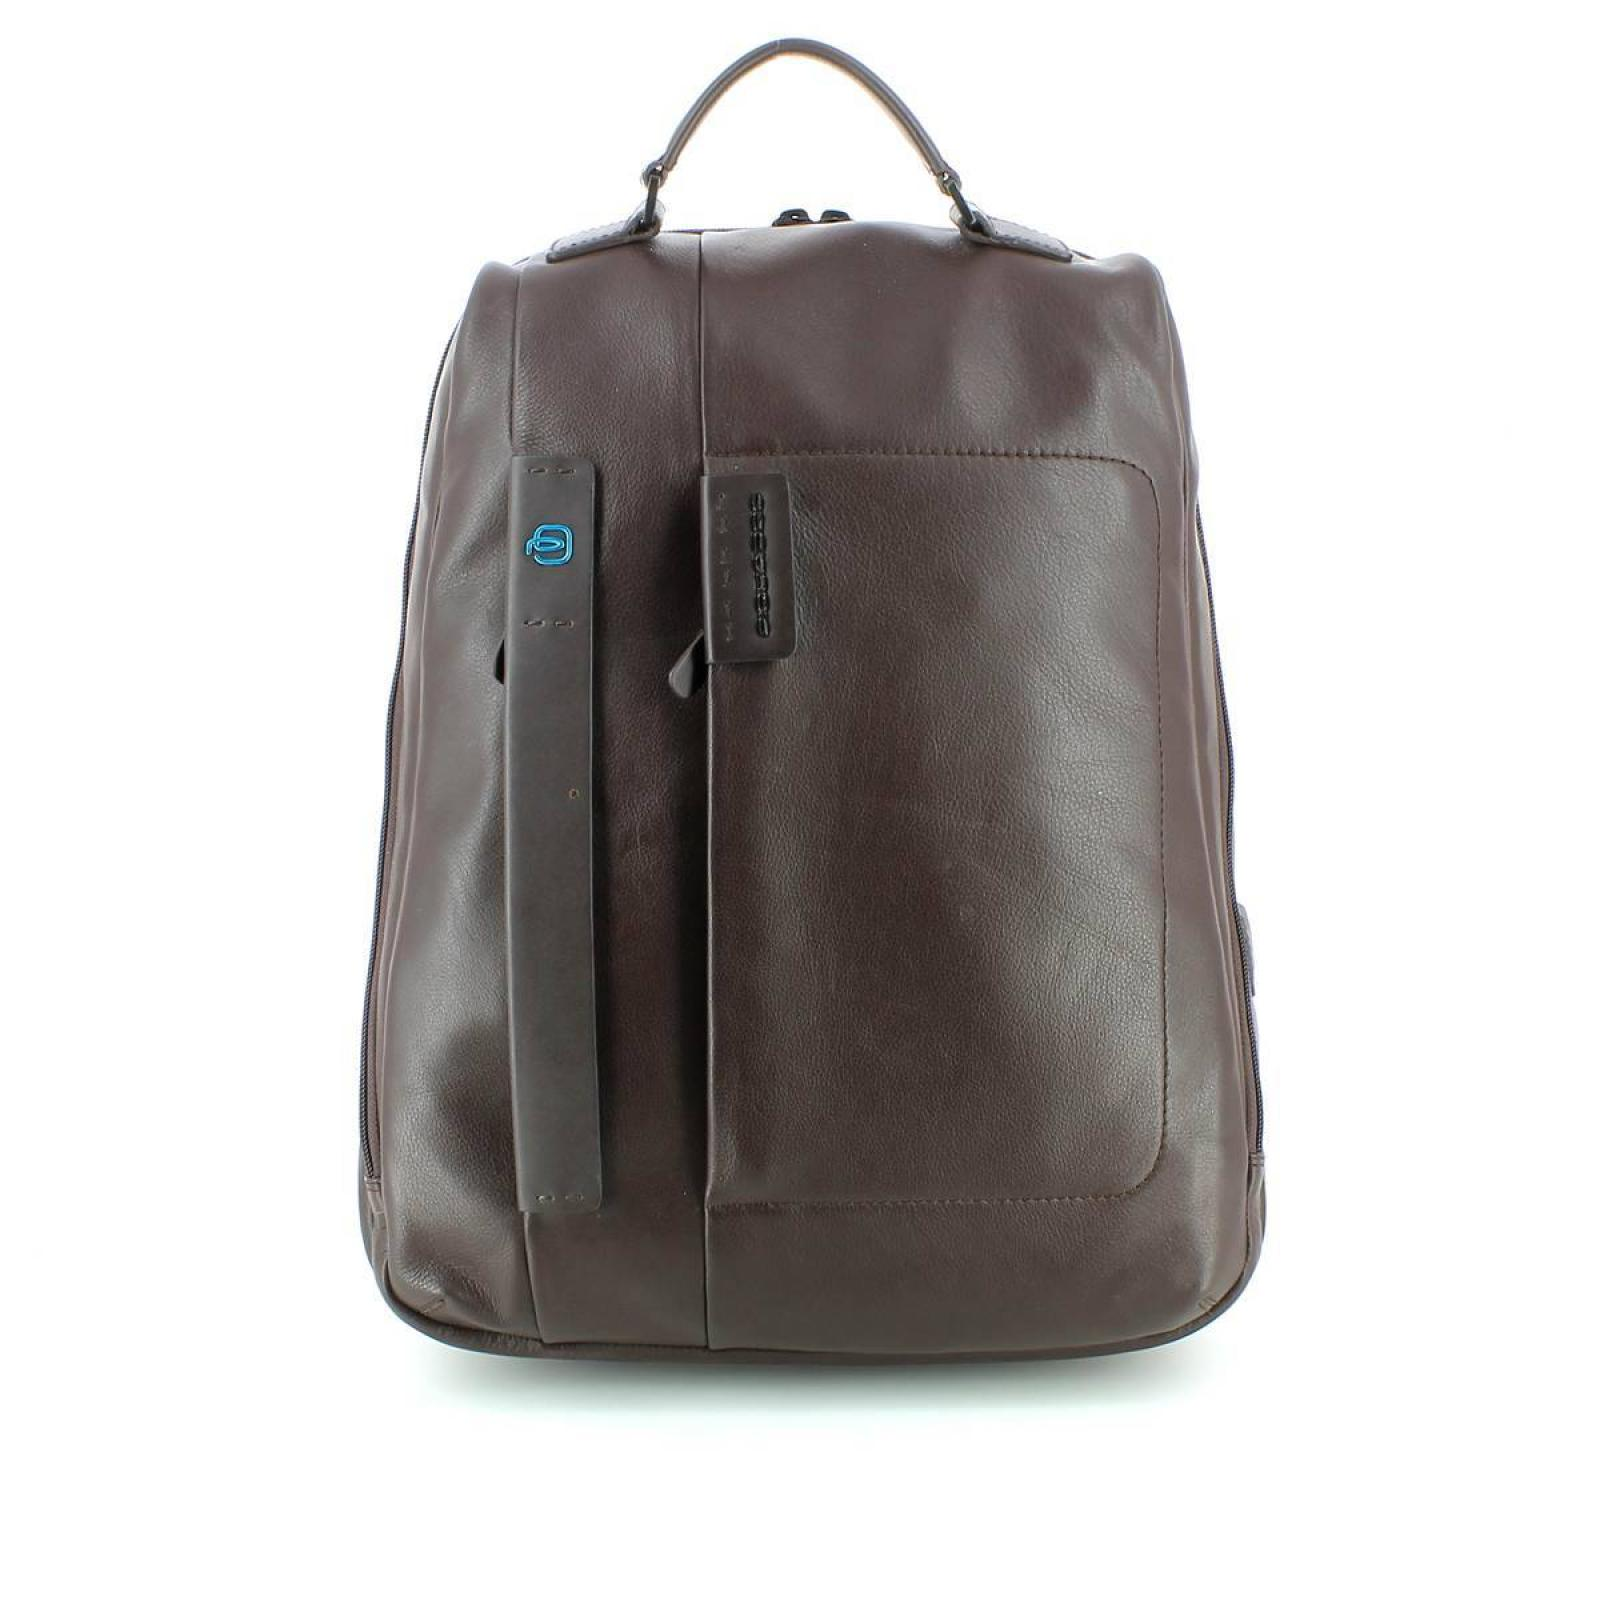 Pulse P15 Backpack